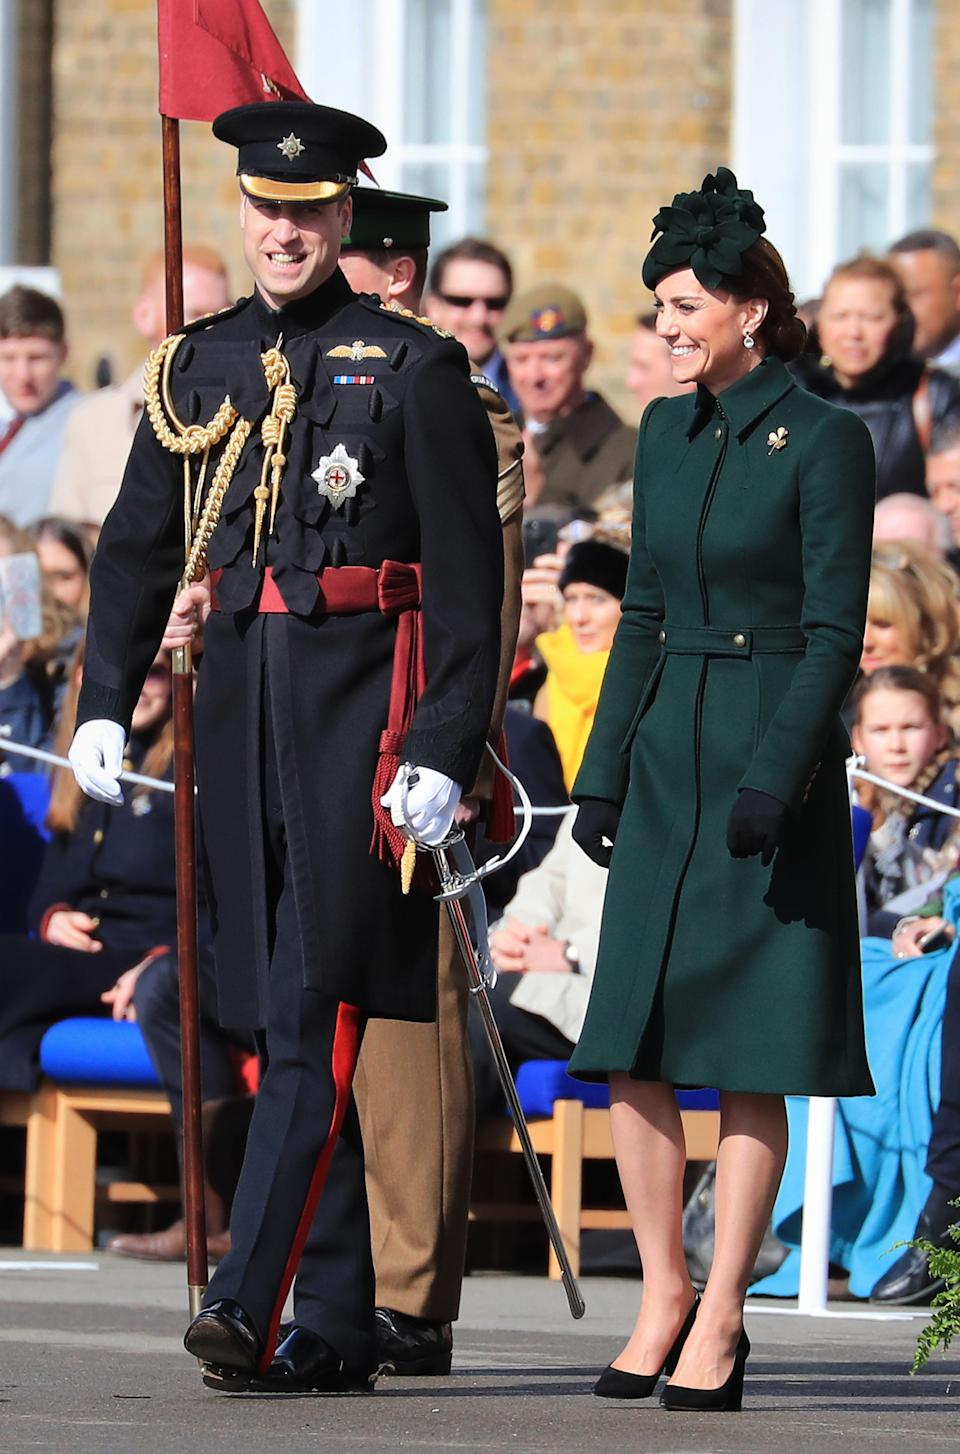 The Duke and Duchess of Cambridge attend the St Patrick's Day parade [Photo: PA]